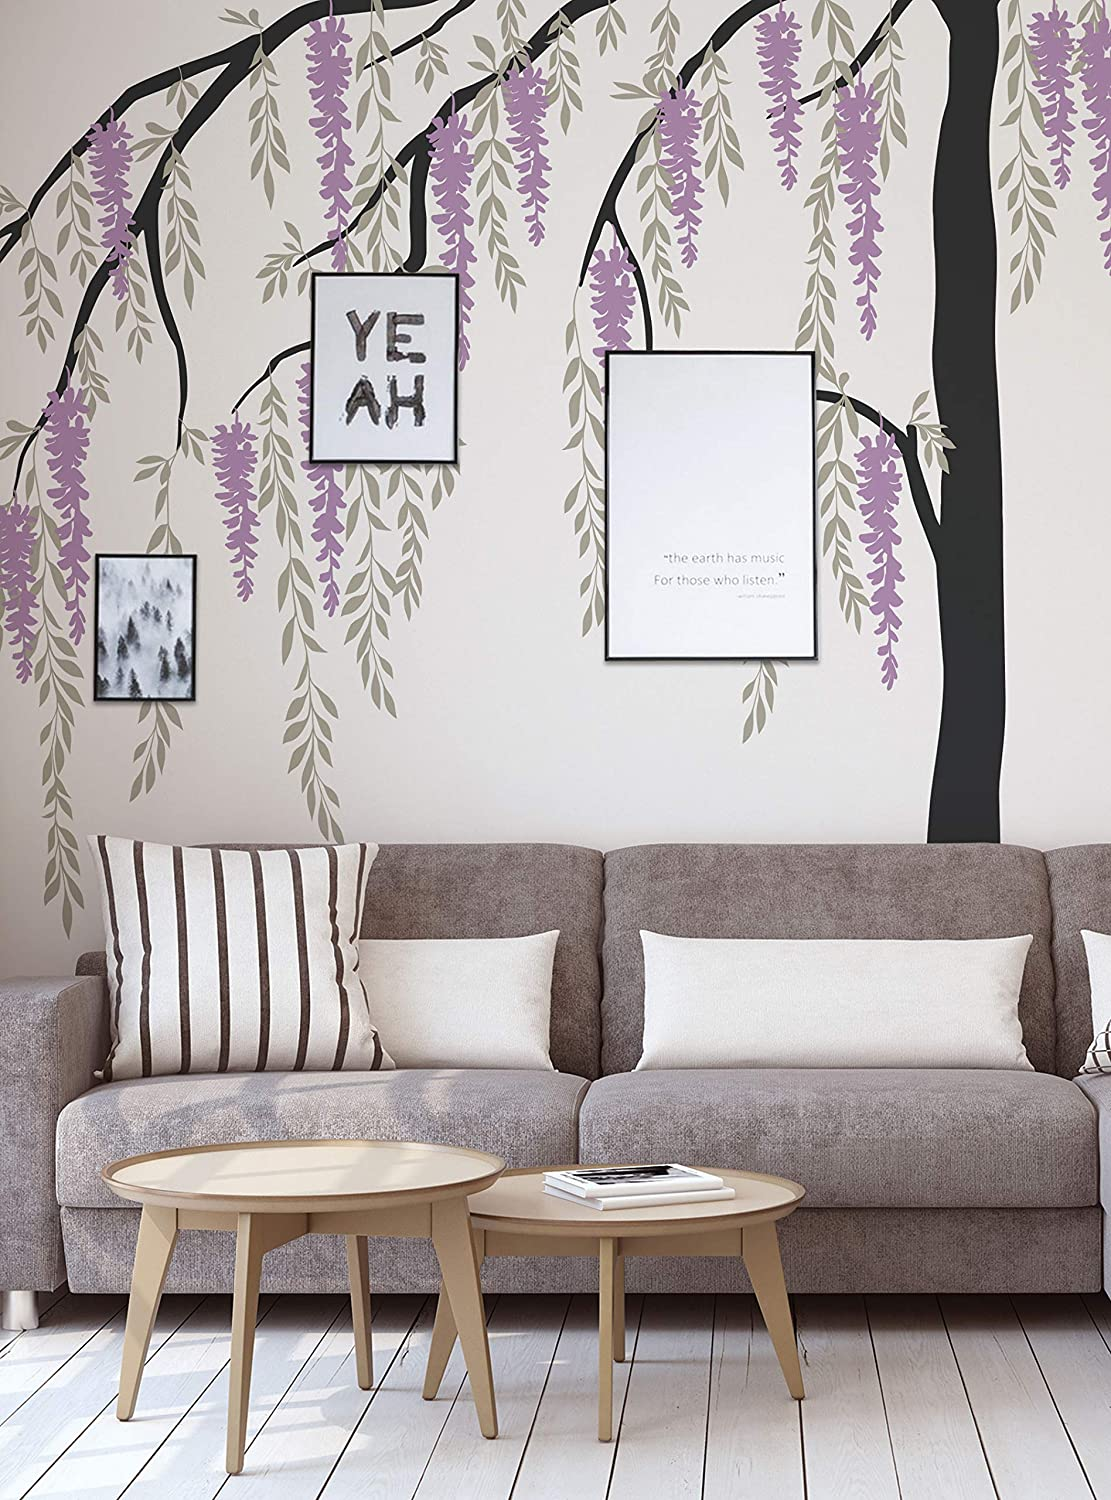 44 wide x 75 tall Purple Flowering Willow Tree Wall Decal